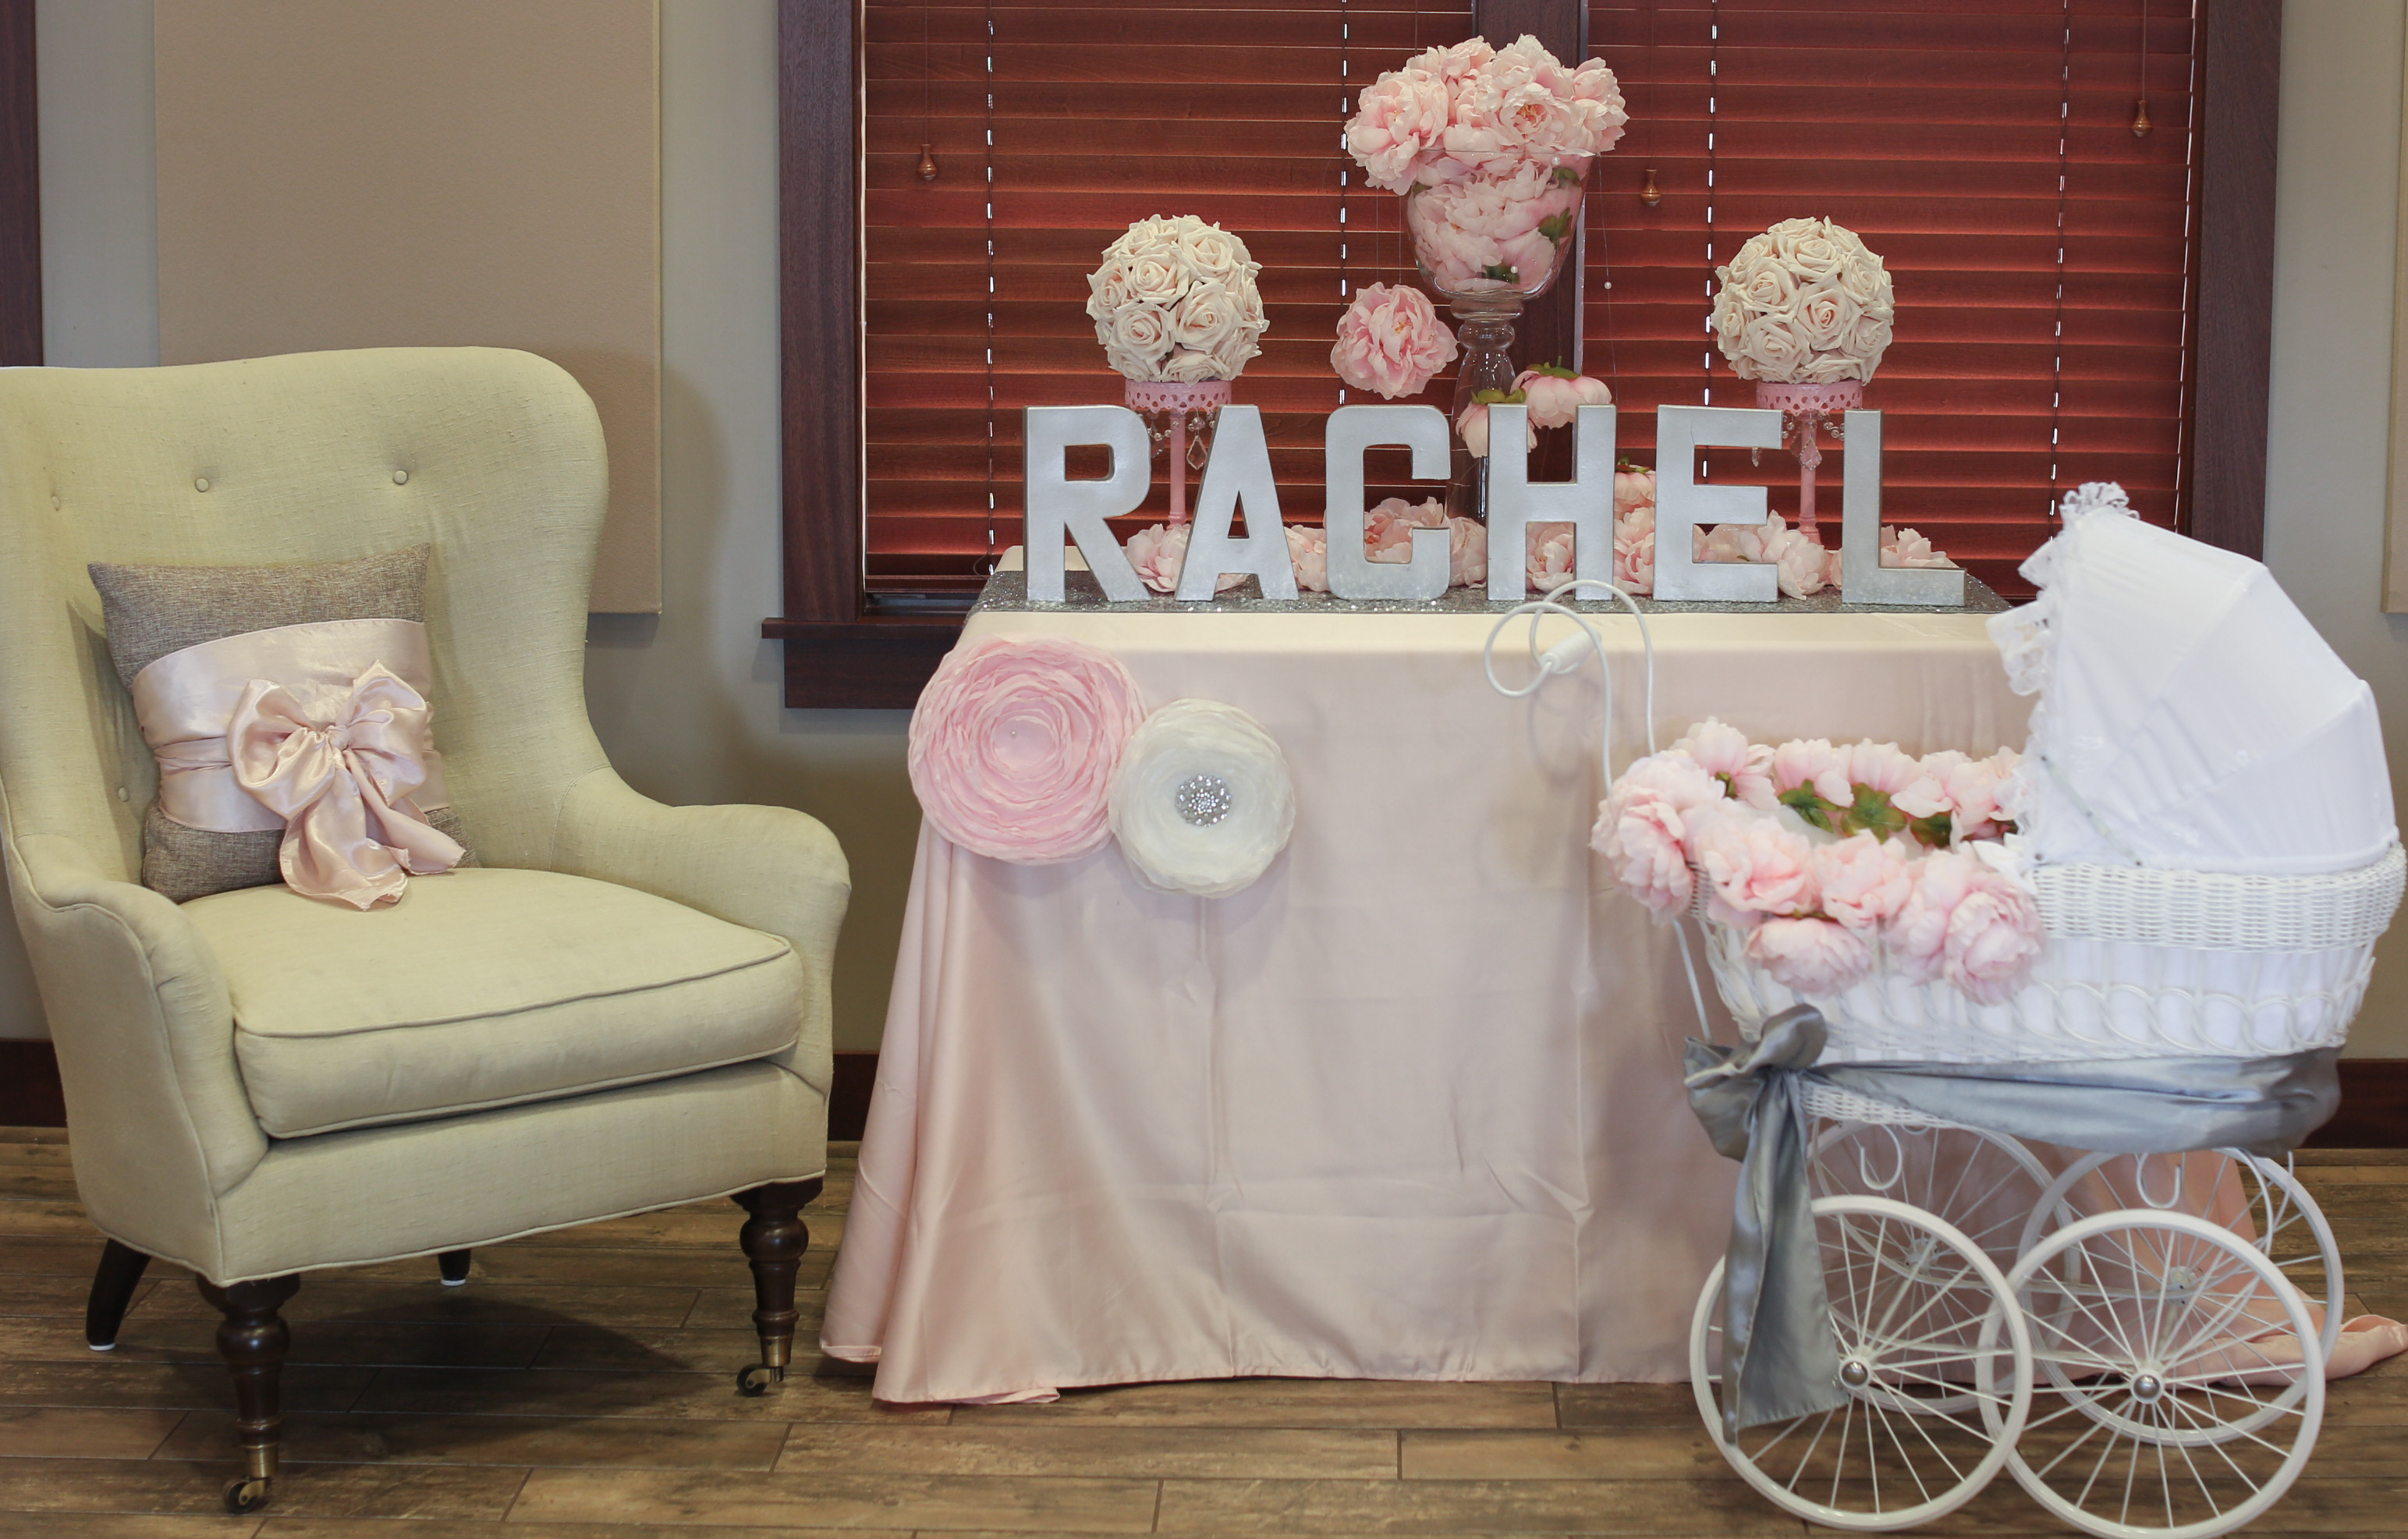 Baby Shower Decorations. Wedding Rentals Party Rentals